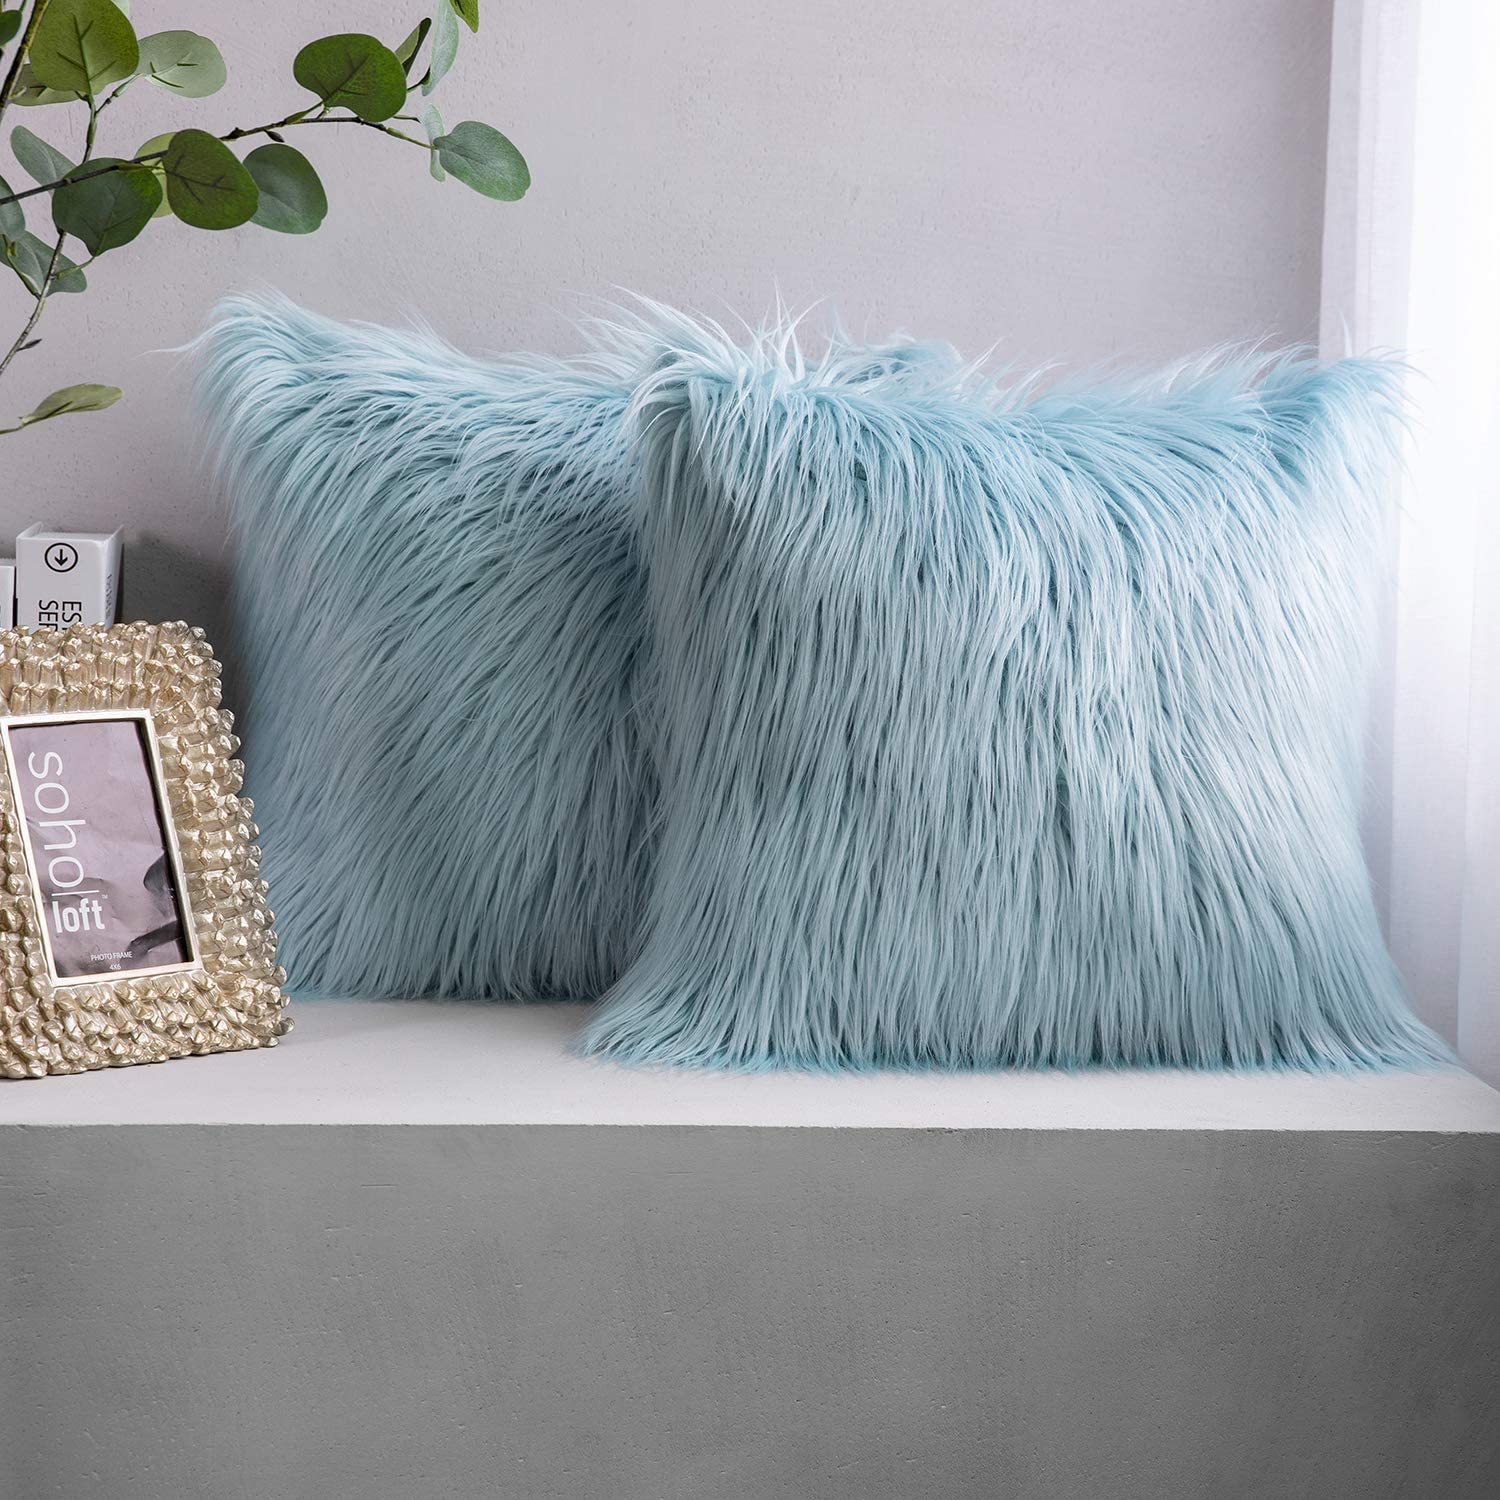 Phantoscope Pack of 2 Faux Fur Pillow Covers Throw Pillows Cases, Luxury Series Plush Cushion Case Mongolian Style, Light Blue 18 x 18 inches 45 x 45 cm